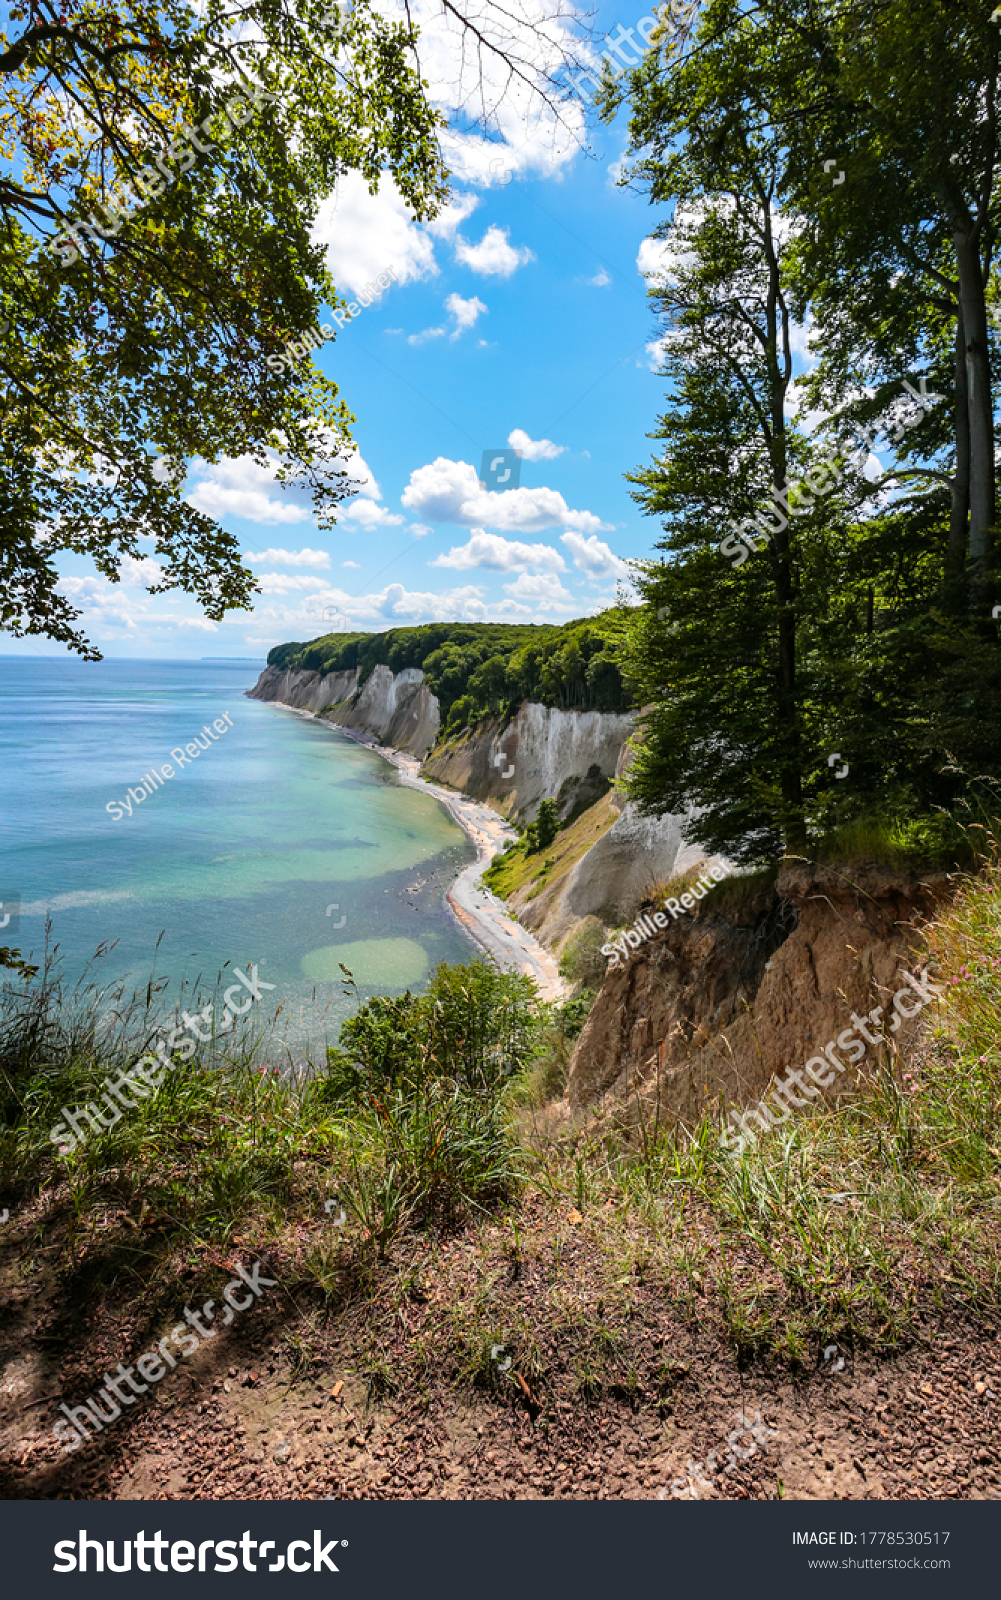 stock-photo-chalk-cliffs-framed-by-trees